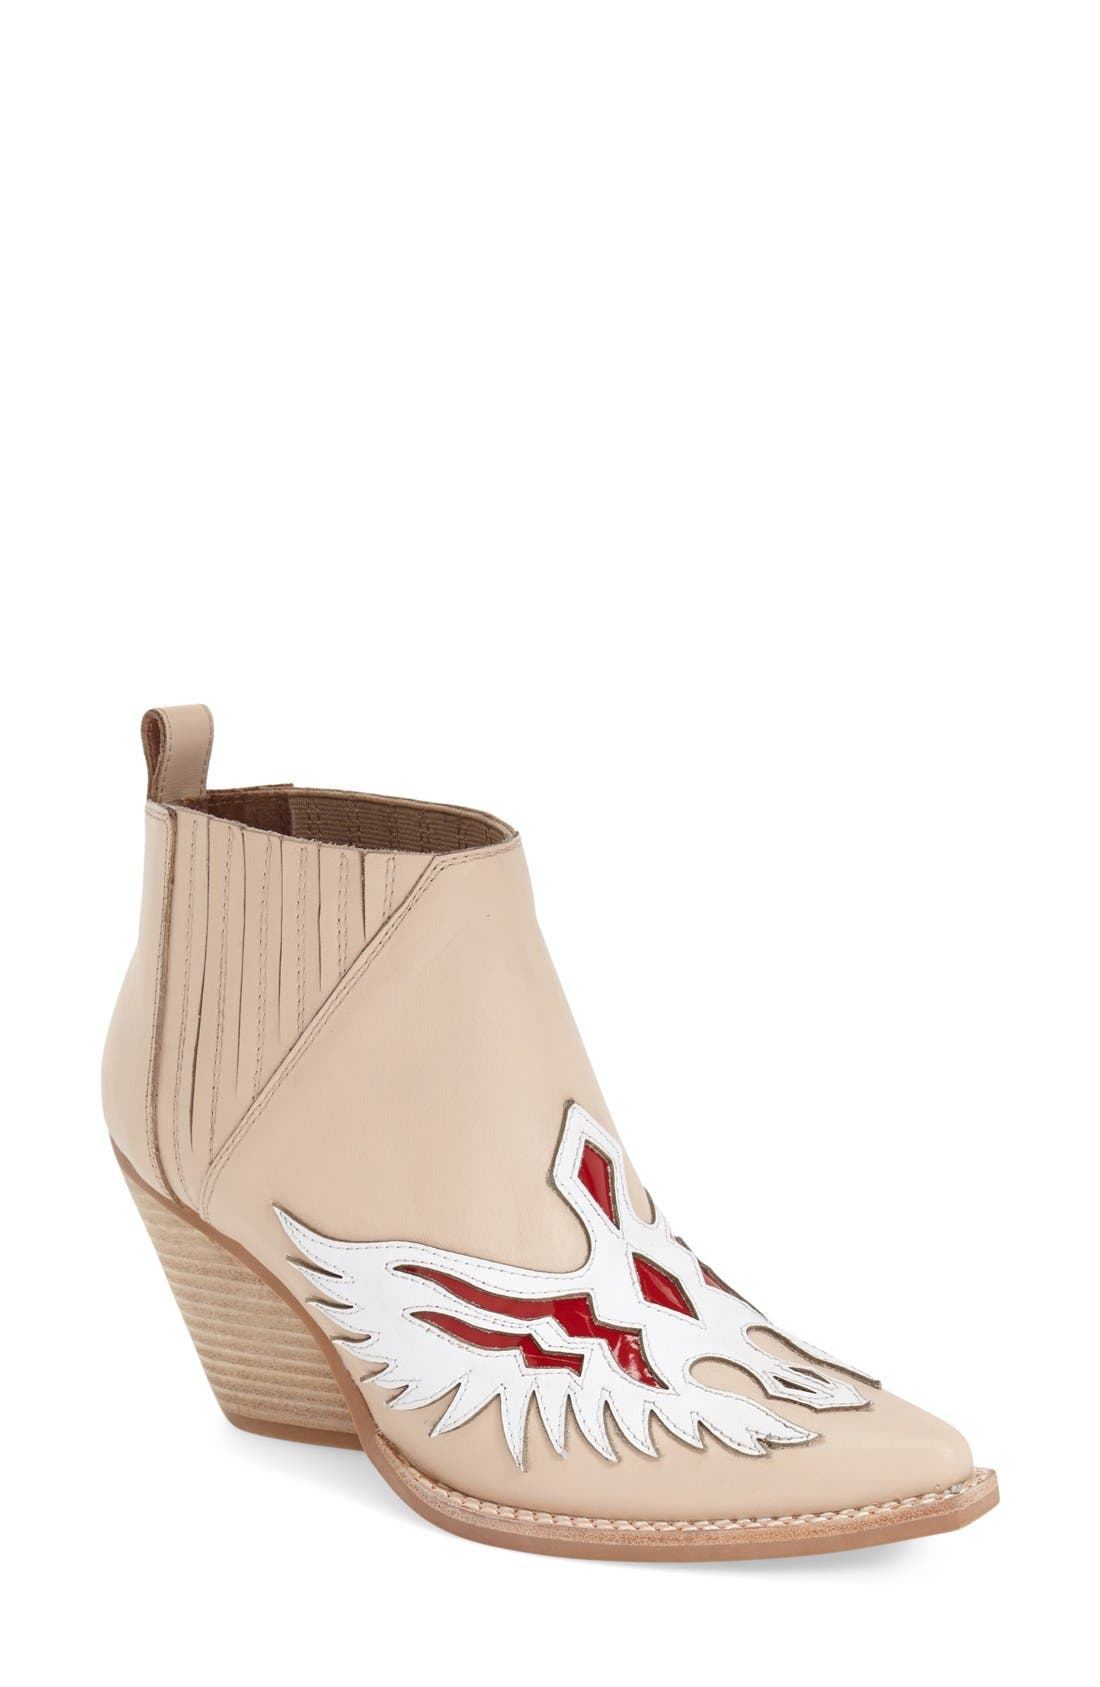 Alternate Image 1 Selected - Jeffrey Campbell 'Fawkes' Bootie (Women)